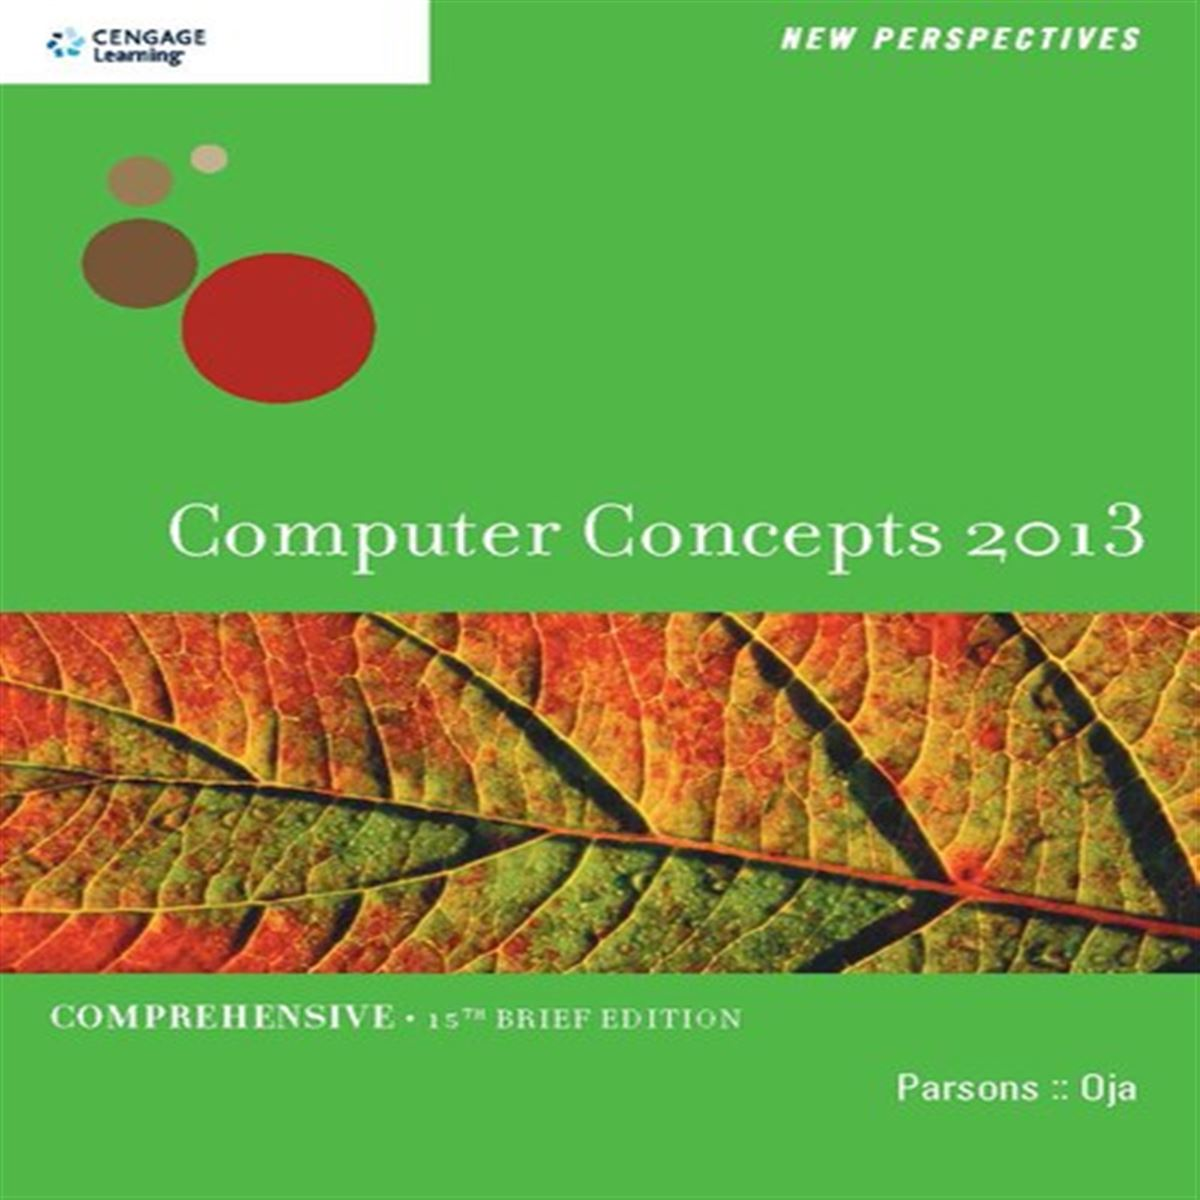 New Perspectives. Computer Concepts 2013. Comprehensive, 15th Brief Edition